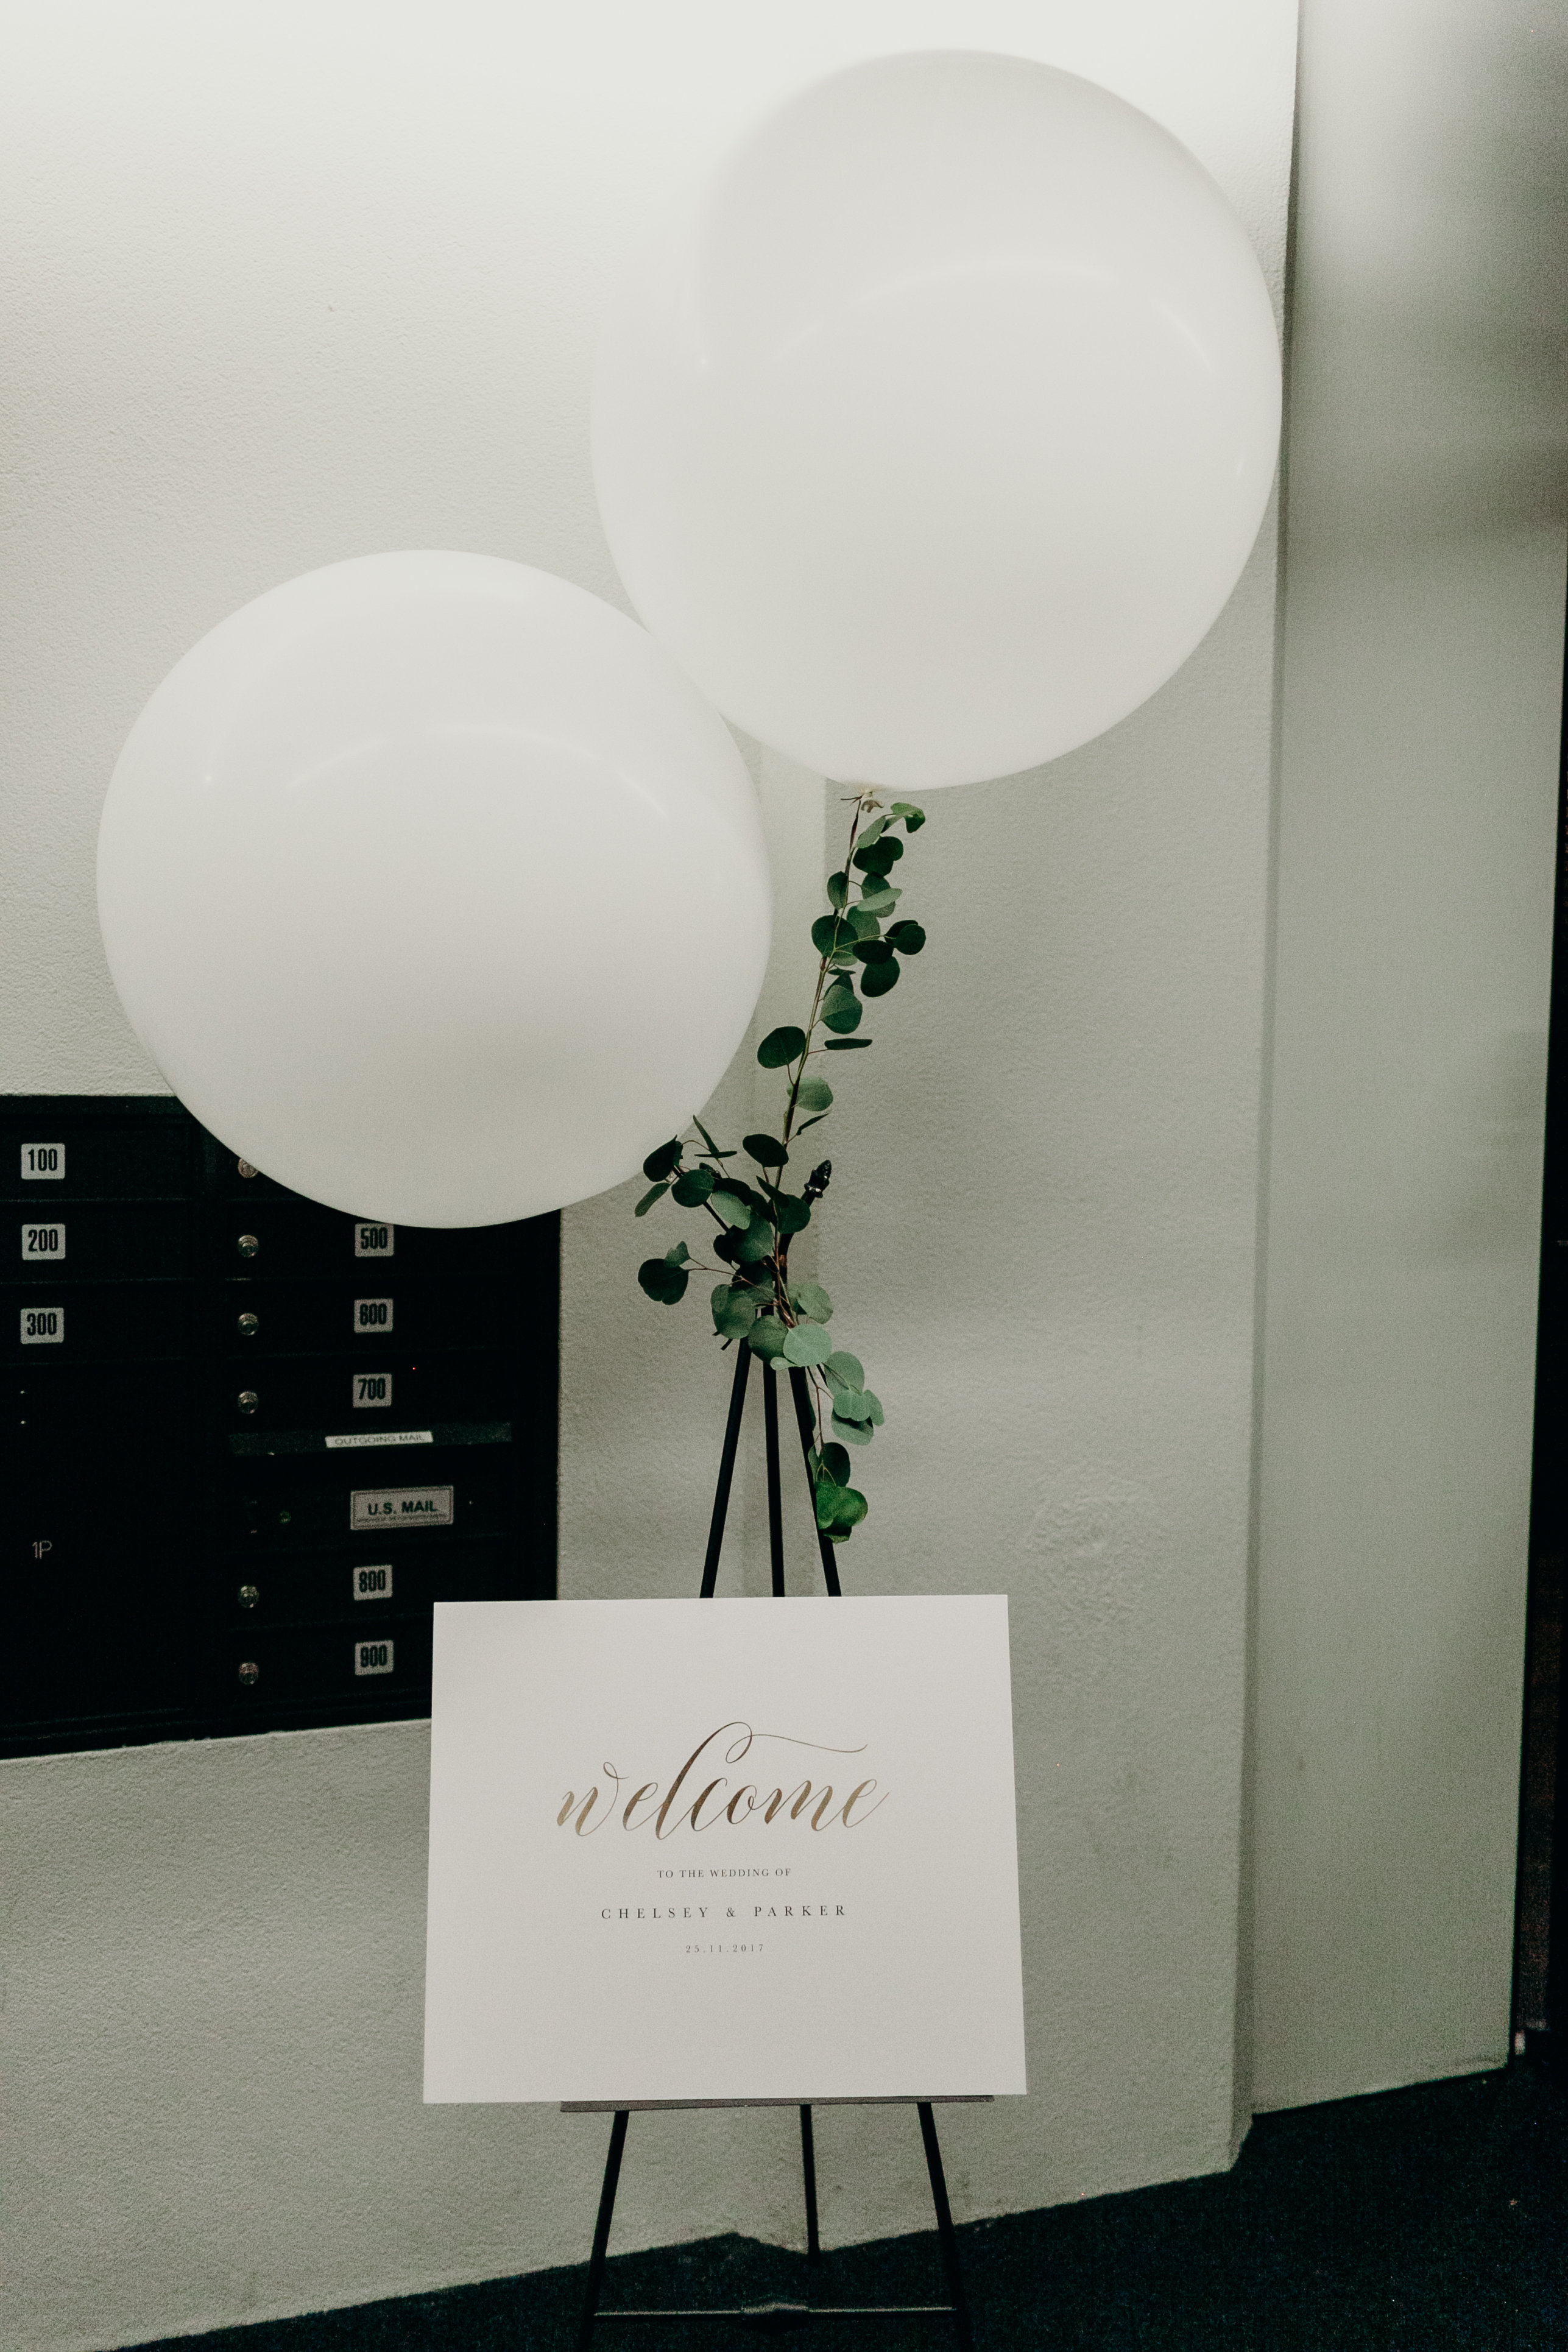 Chelsey and Parker's welcome balloons